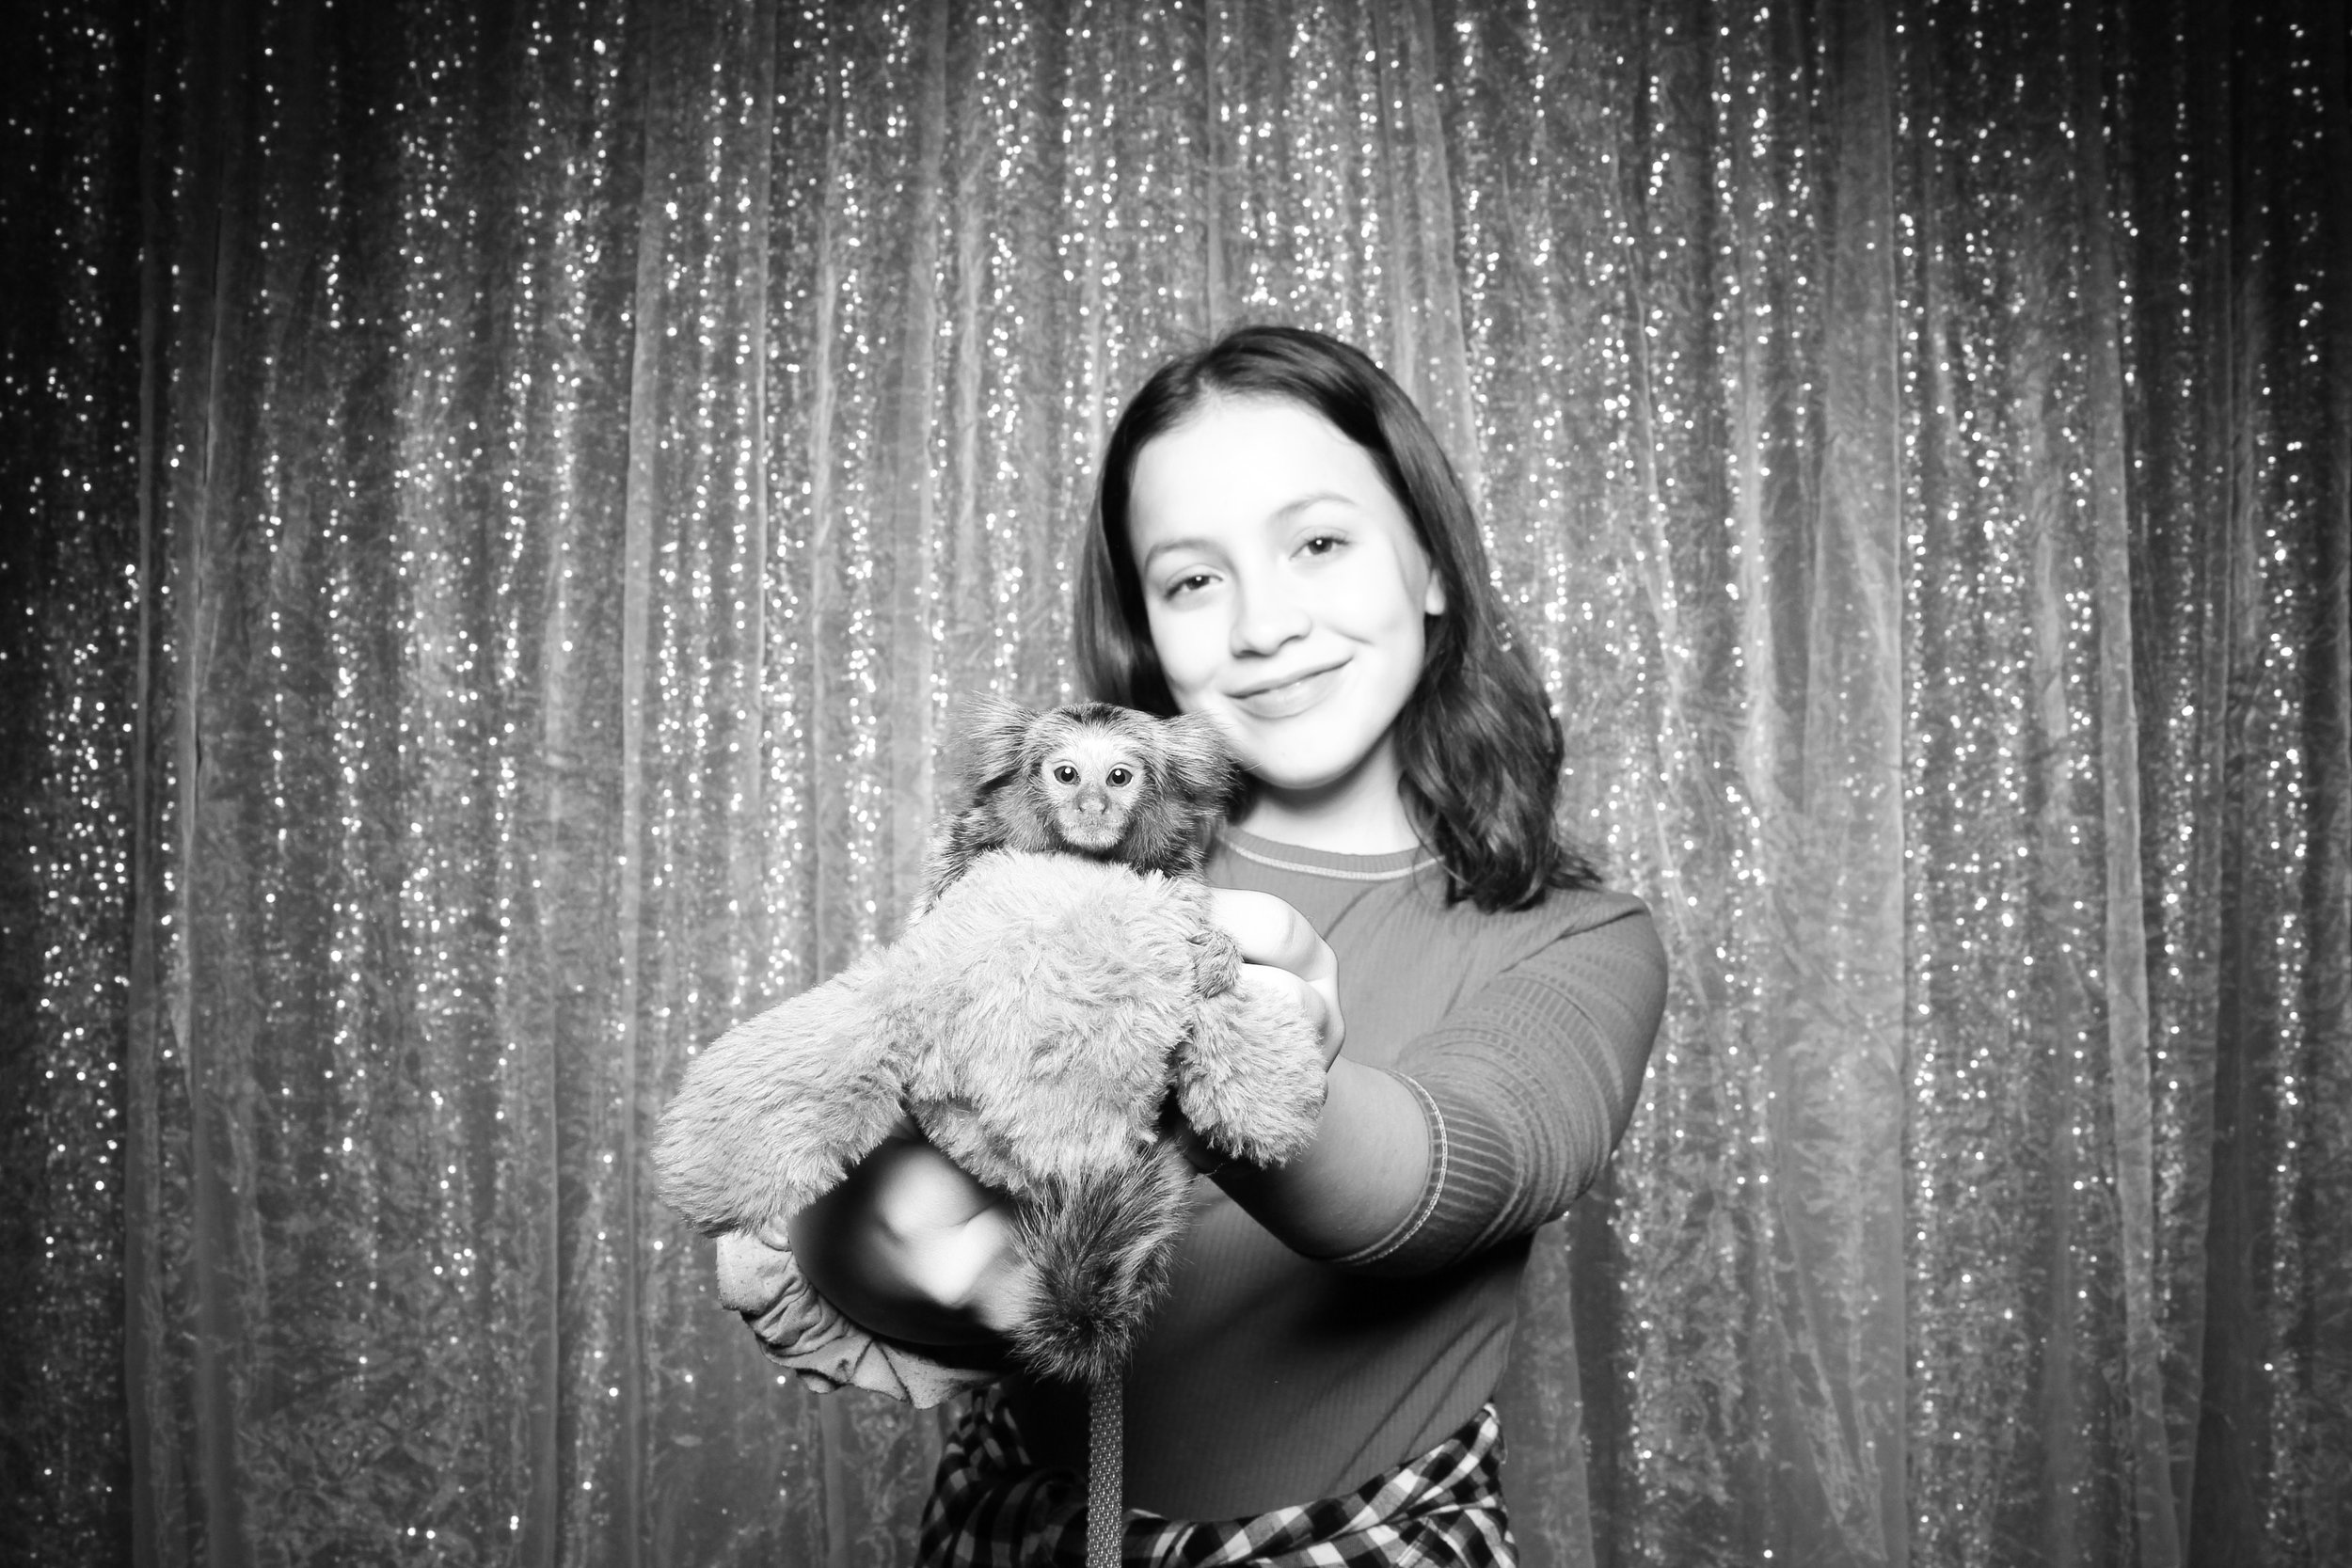 Chicago_Vintage_Wedding_Photobooth_Downers_Grove_27.jpg